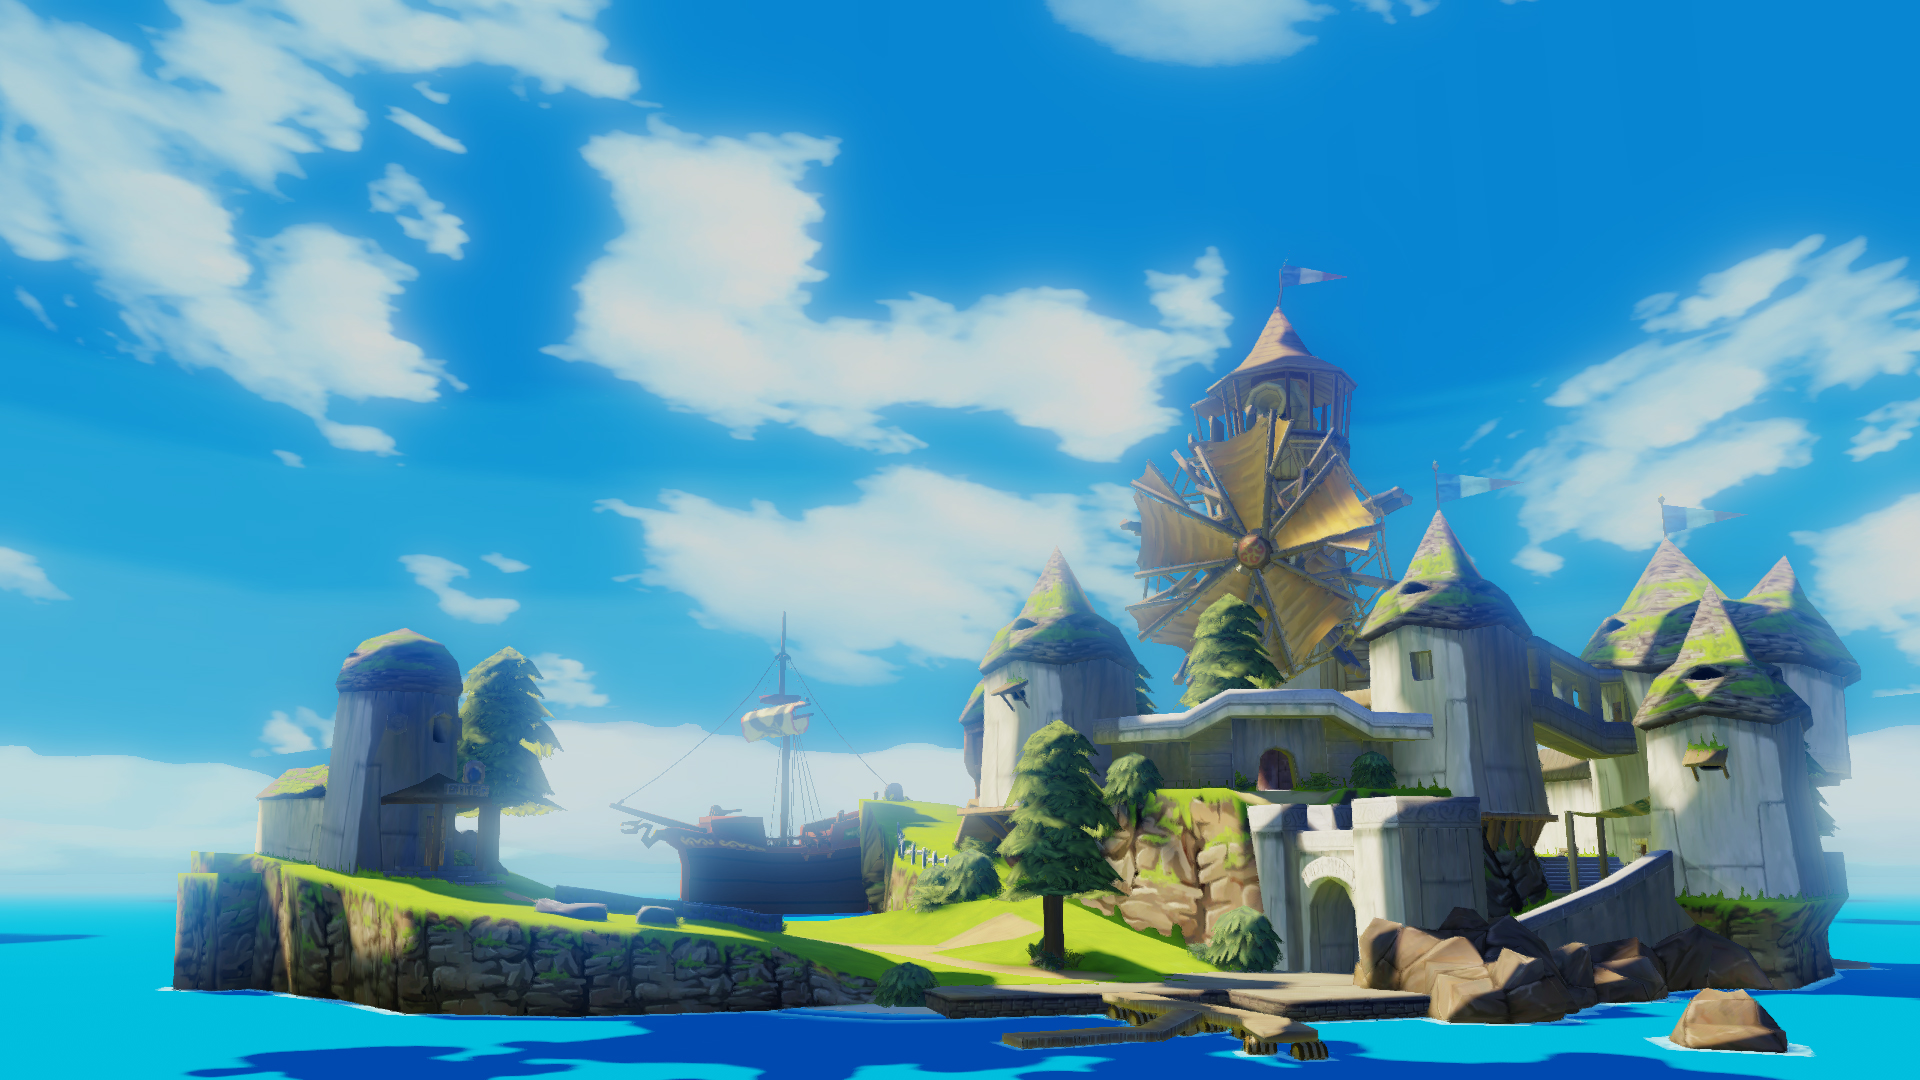 file_6564_Zelda-Wind-Waker-HD-01